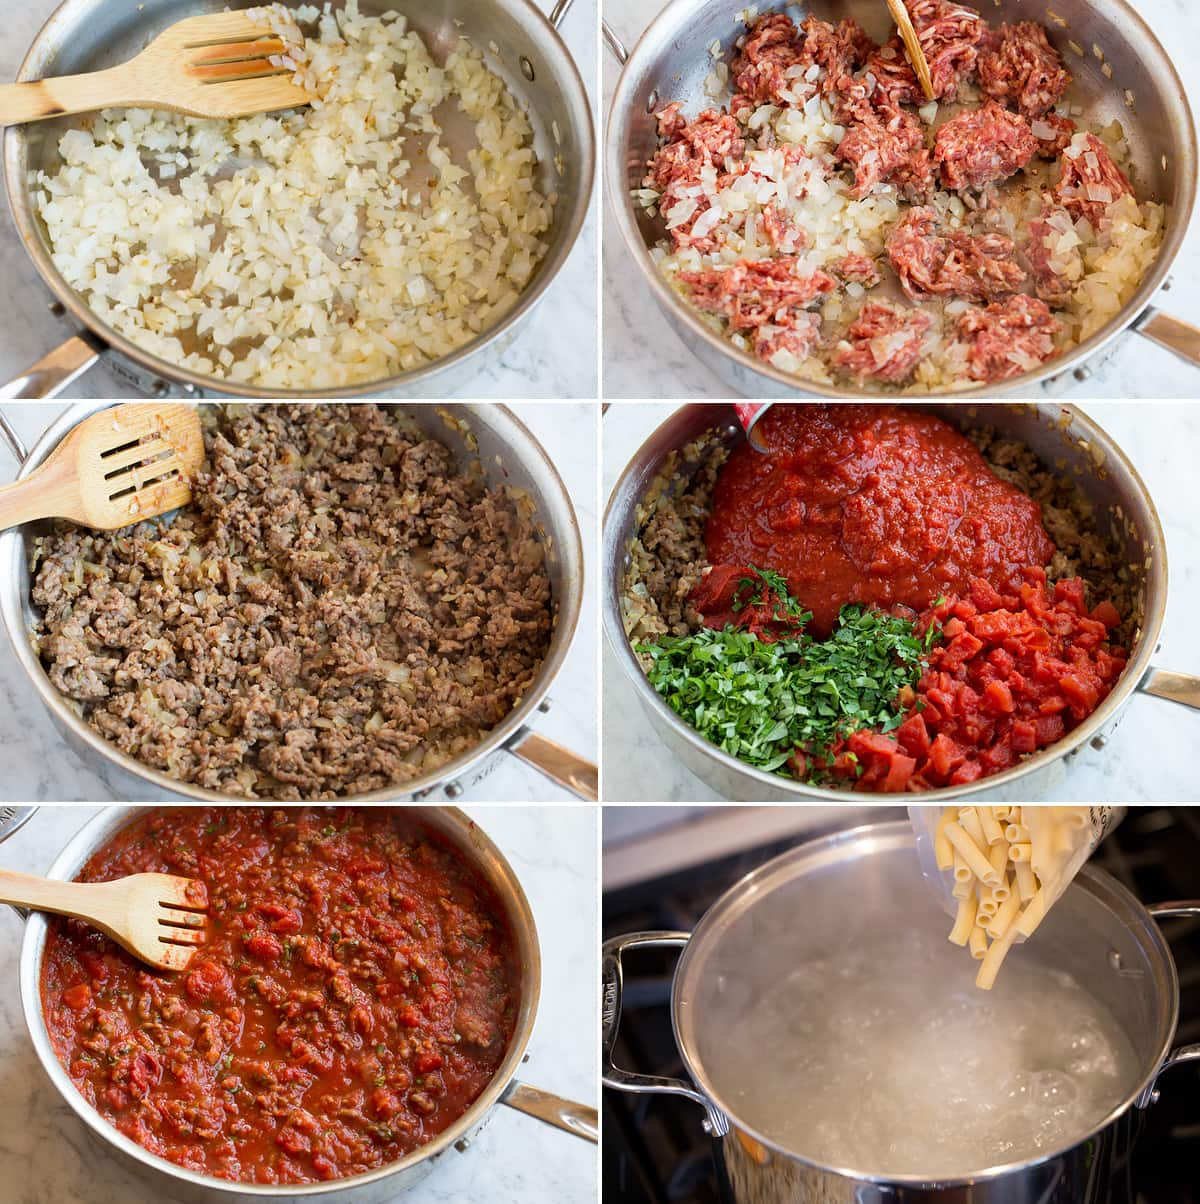 Image of steps showing how to make sauce for baked ziti.